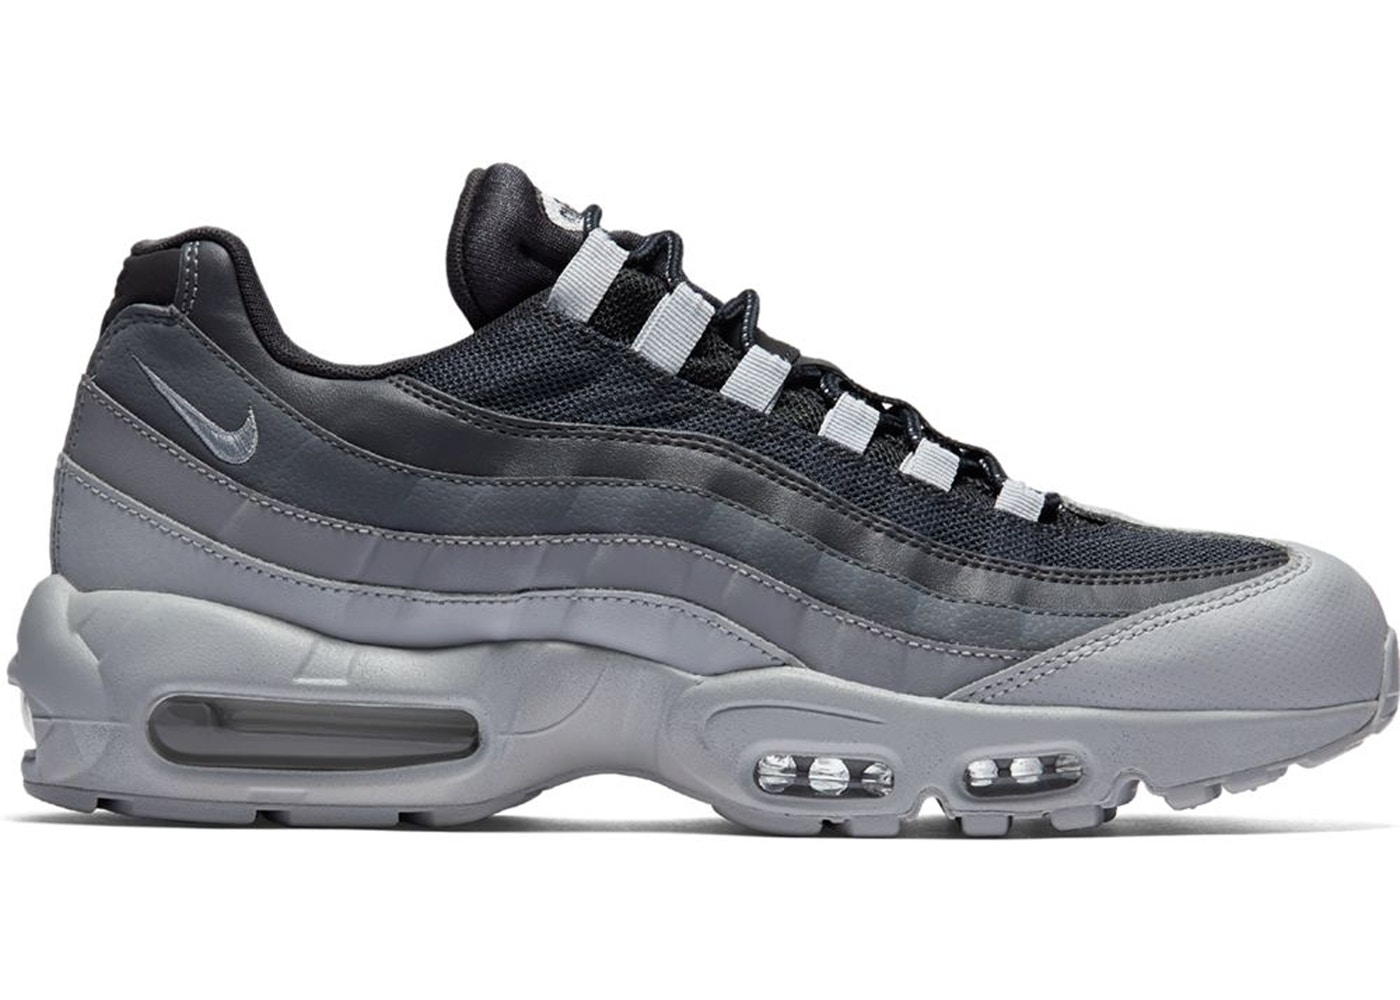 nike air max 95 size 12 black